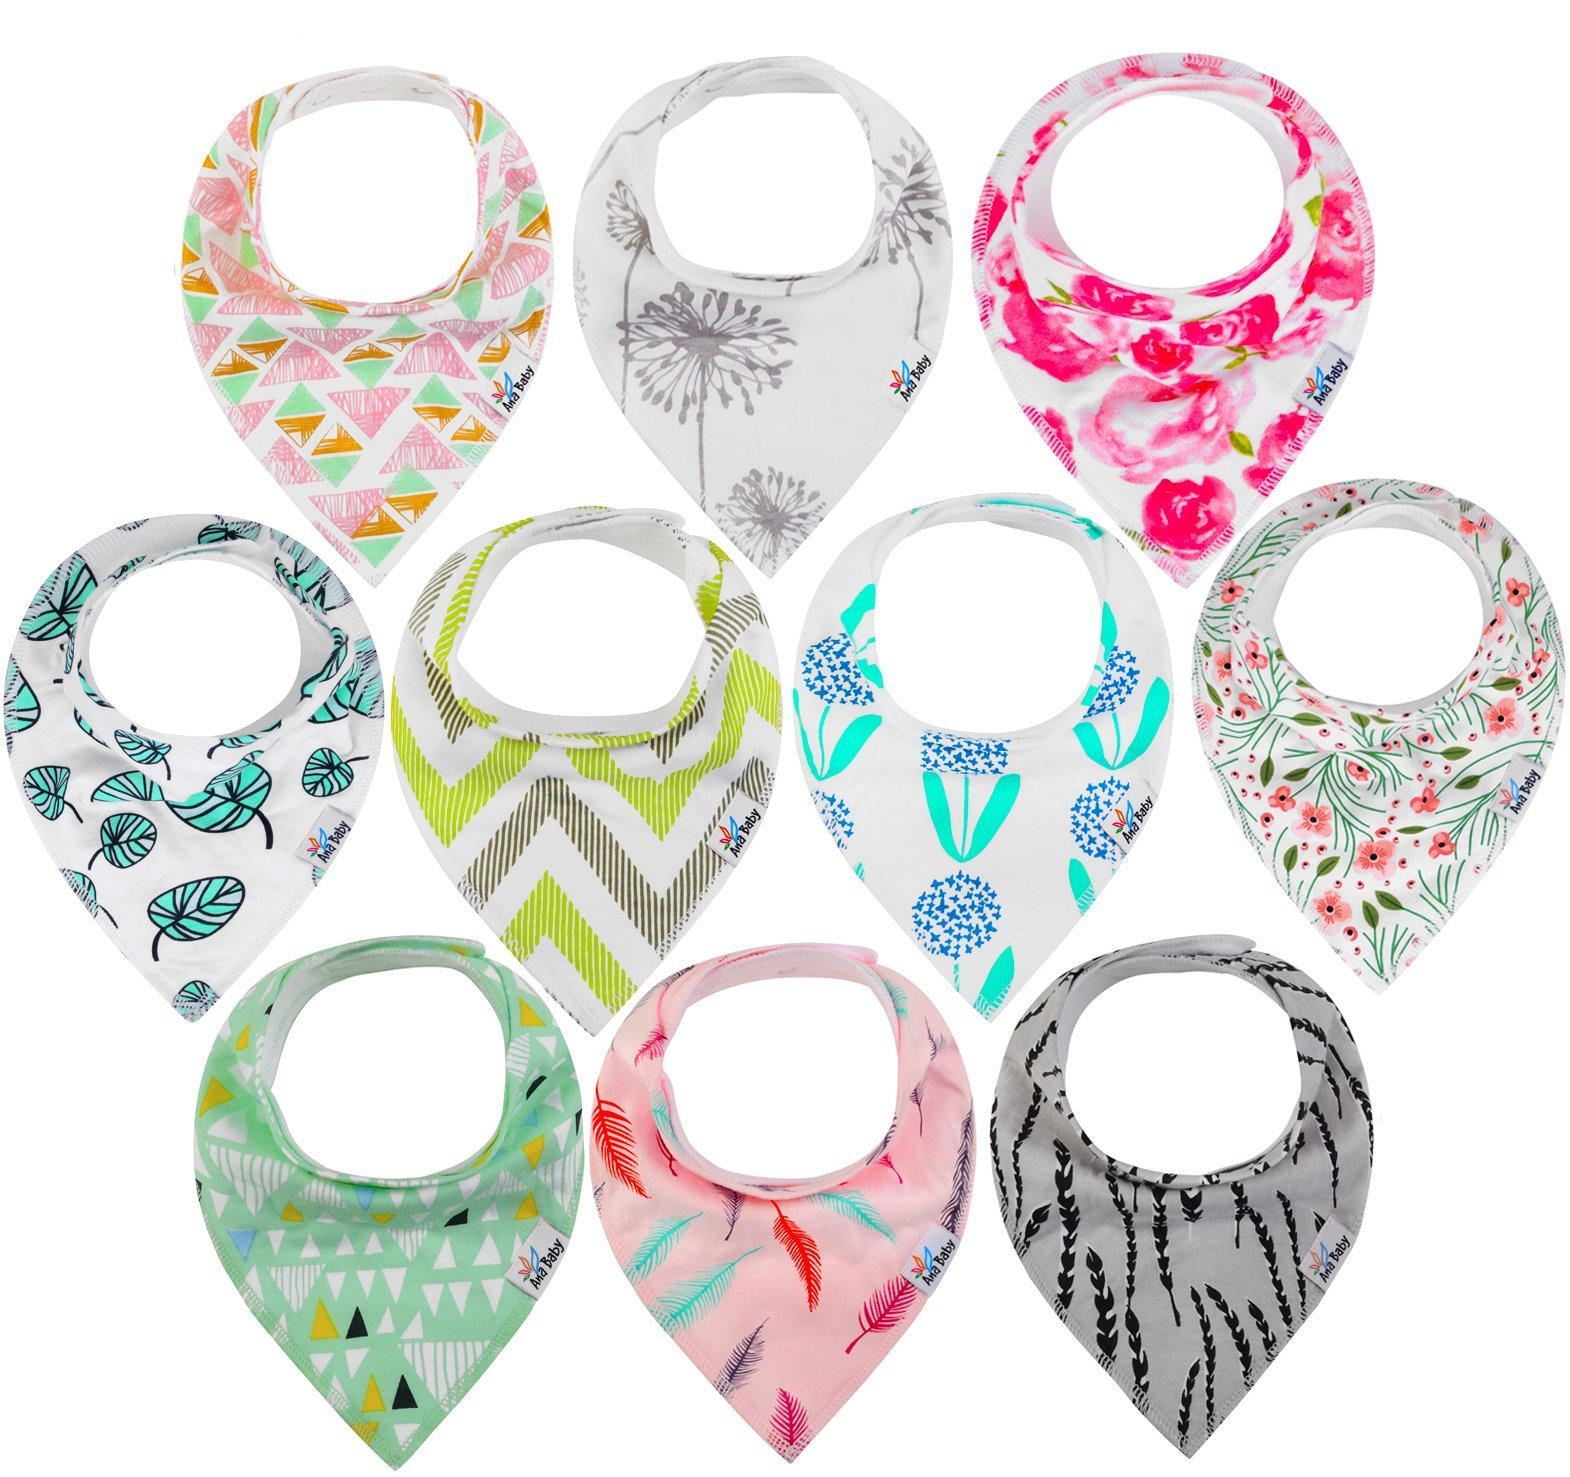 10-Pack Baby Bandana Drool Bibs for Drooling and Teething, 100% Organic Cotton, Soft and Absorbent, Hypoallergenic Bibs for Baby Girls - Baby Shower Gift Set by Ana Baby …